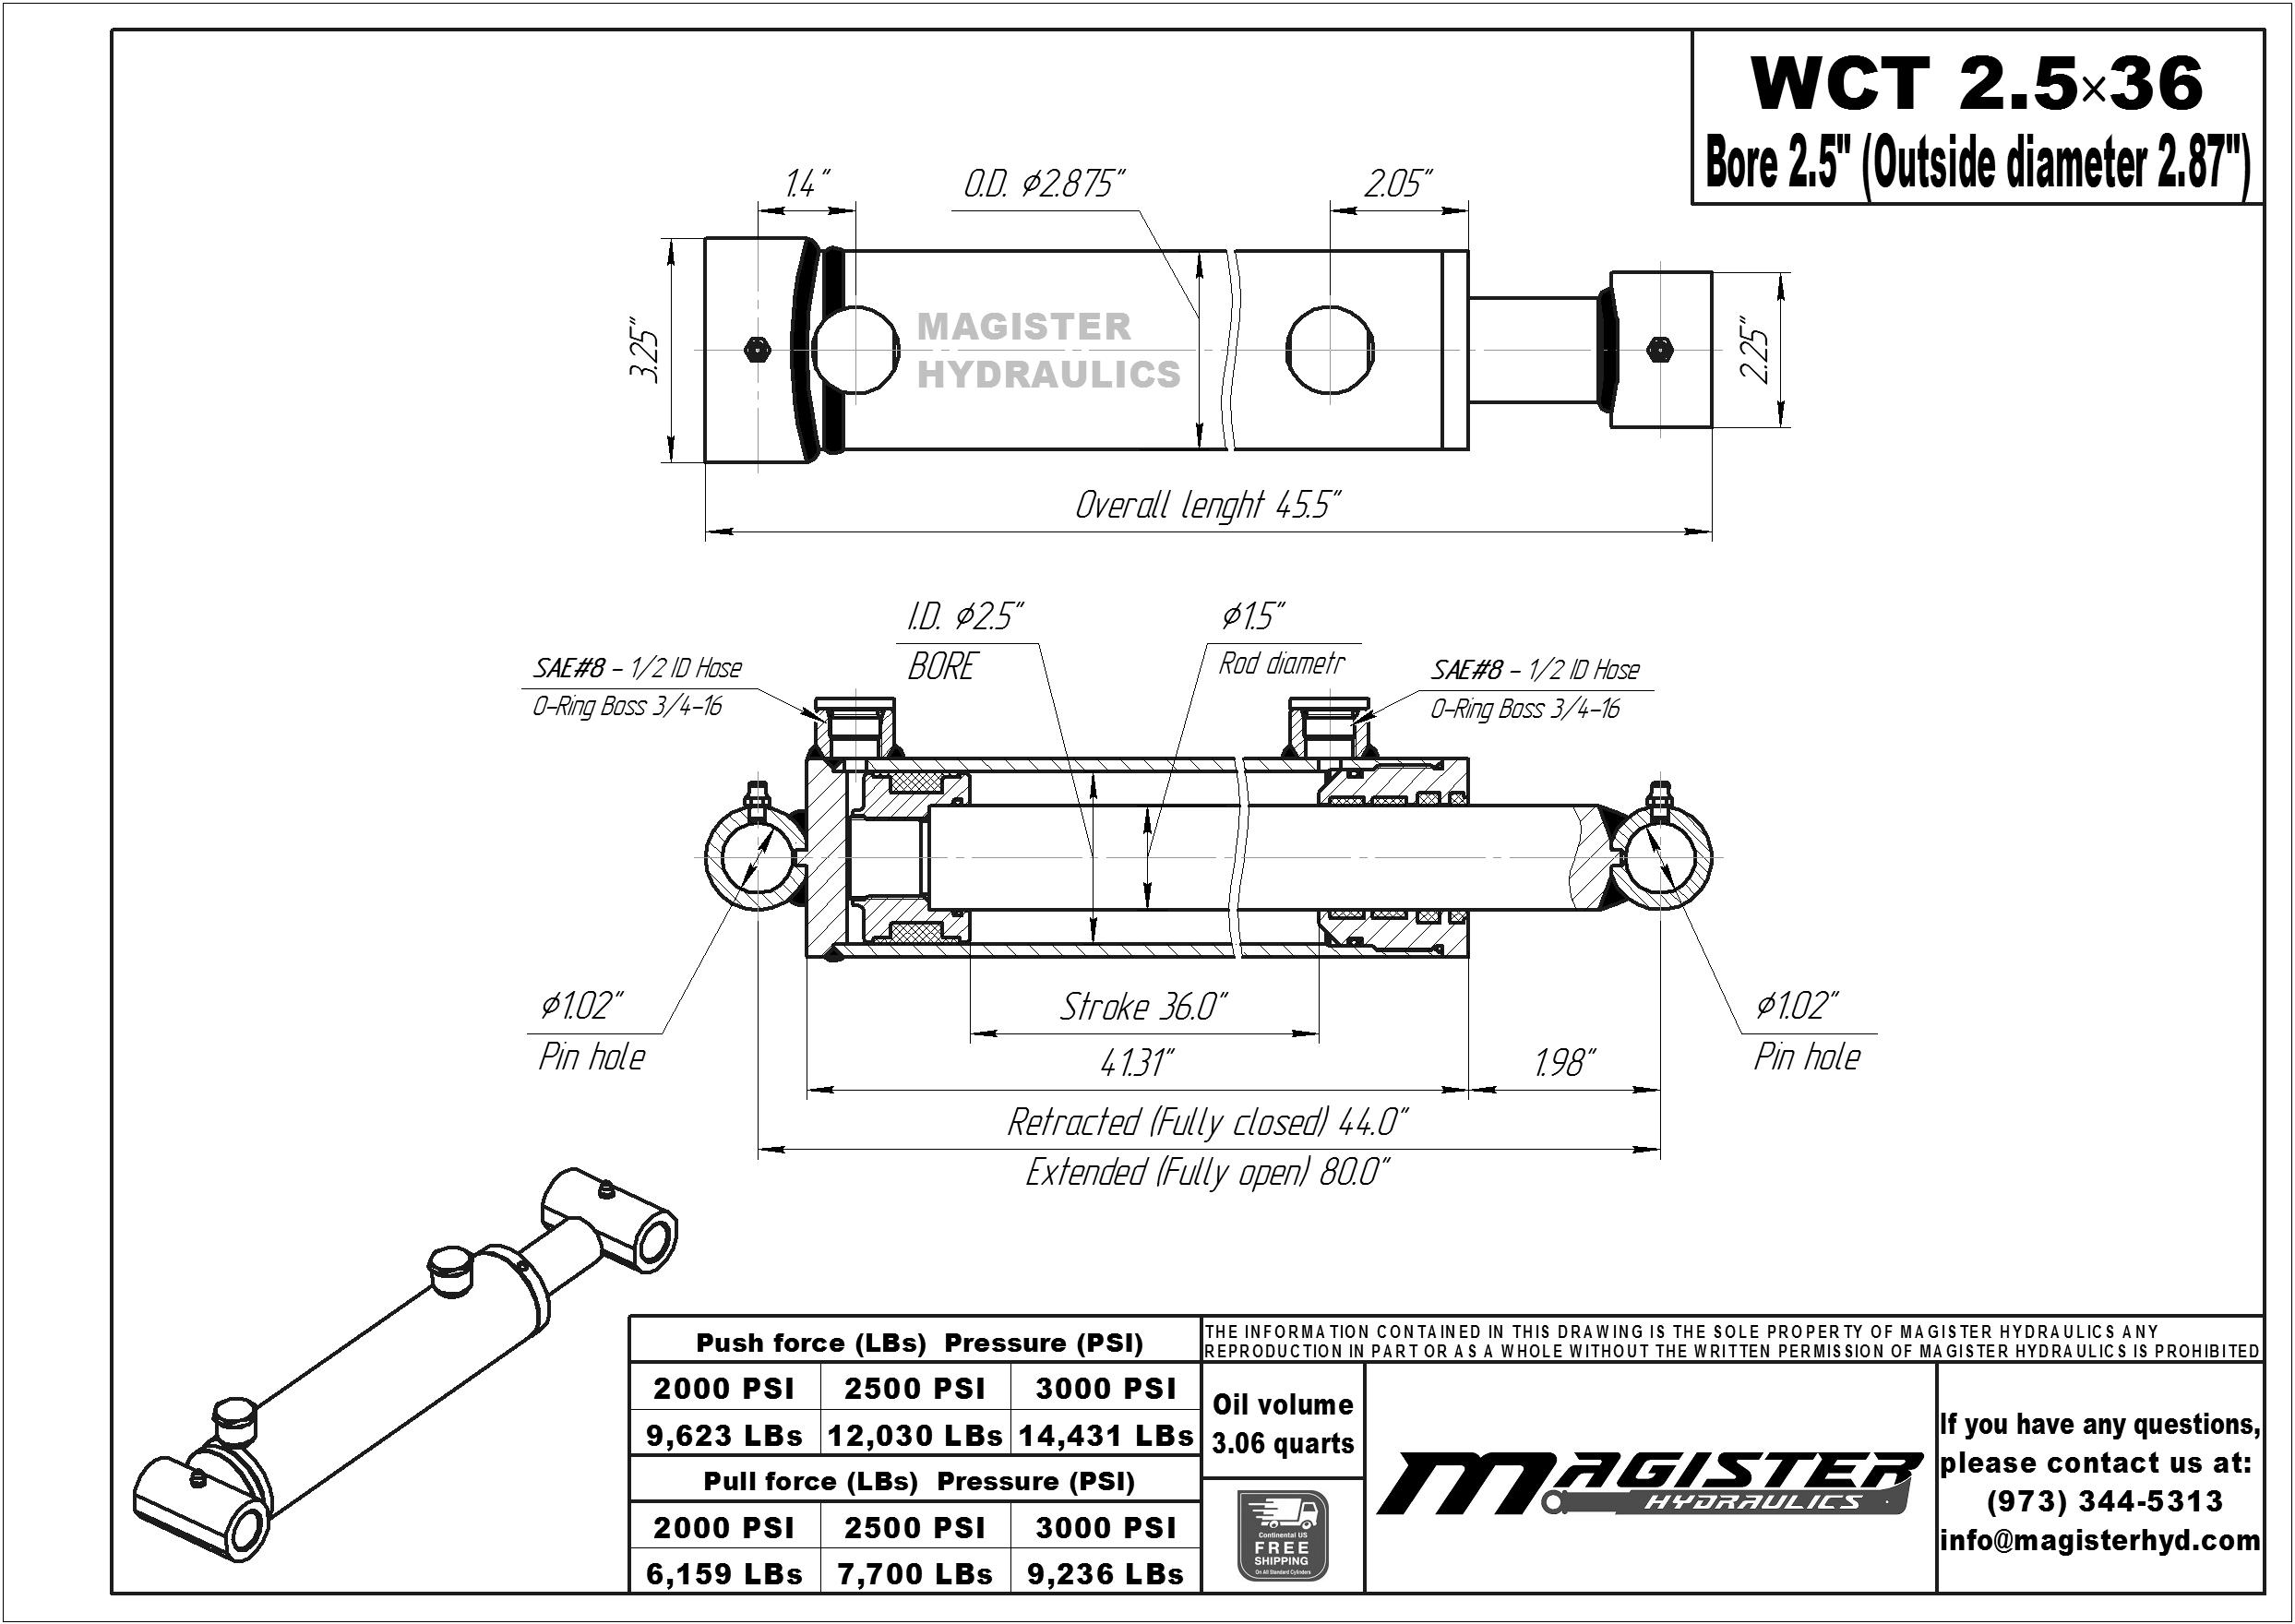 2.5 bore x 36 stroke hydraulic cylinder, welded cross tube double acting cylinder | Magister Hydraulics